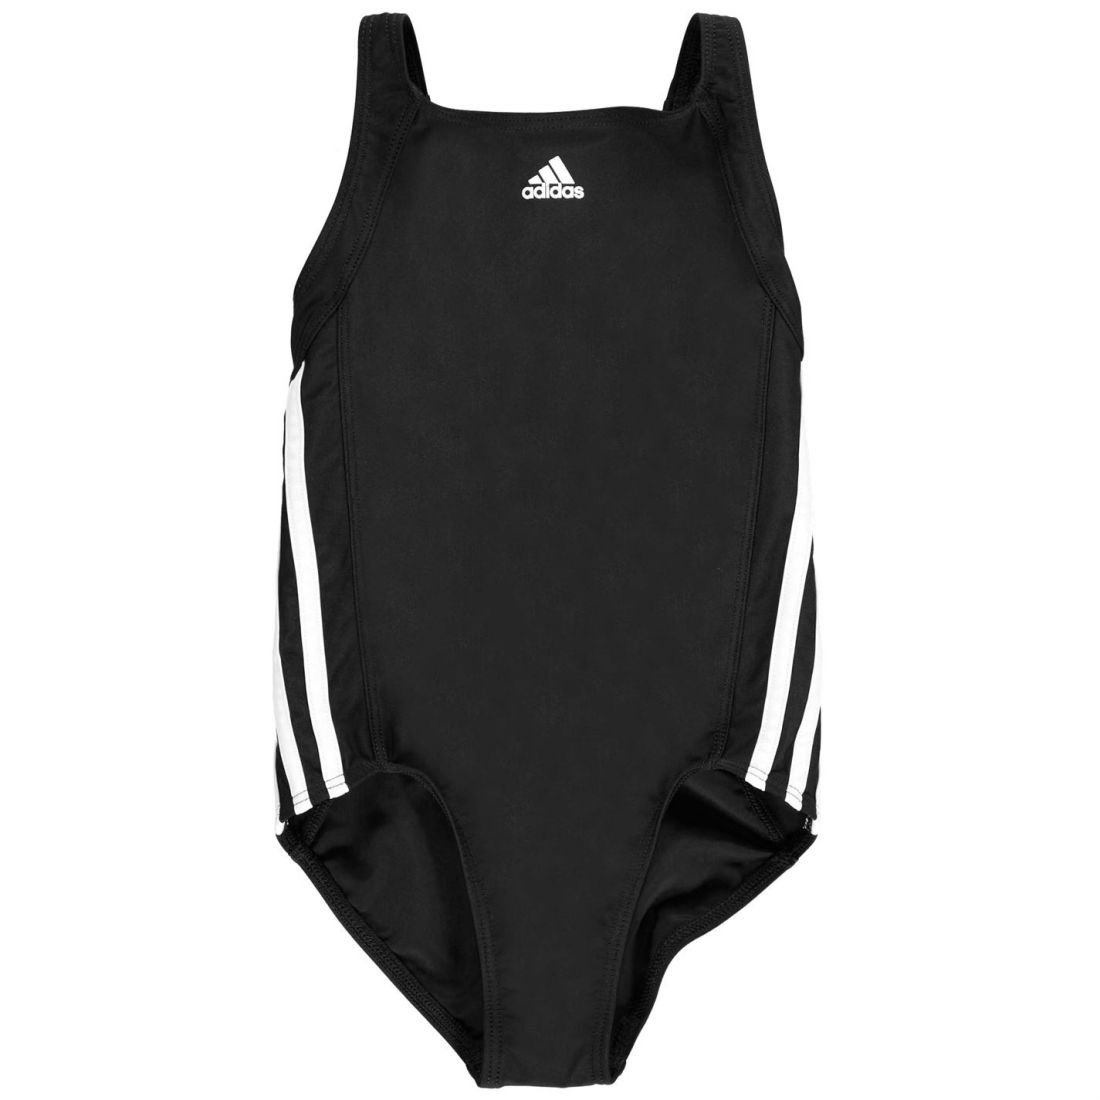 3a3fe45450 adidas Girl Sports Swimming Costume Essence Core 3s 1pc Y Black ...